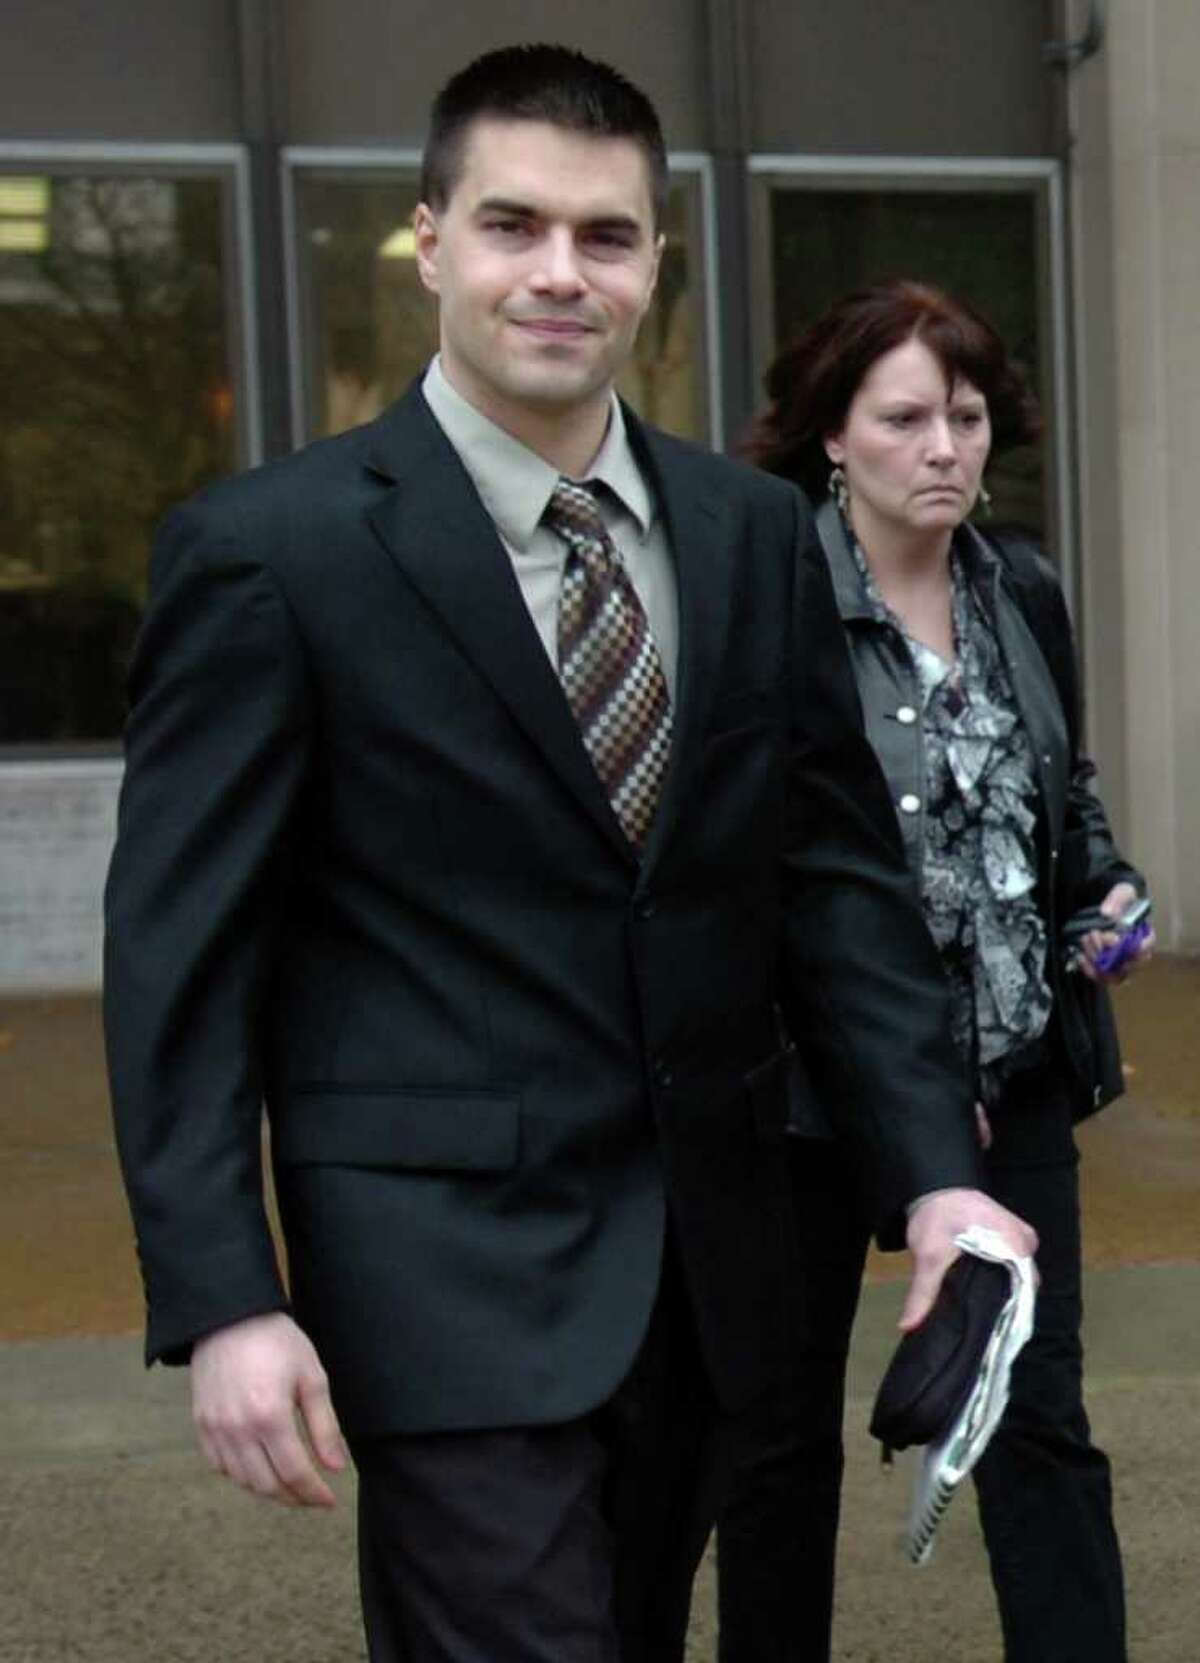 Ken Zrallack leaves the federal courthouse in Bridgeport, Conn. Dec. 1st, 2010. The reputed head of the Connecticut White Wolves, a white supremacist group, Zrallack was found not guilty by a federal jury considering charges that he conspired to sell guns and hand grenades to a Ku Klux Klan offshoot.